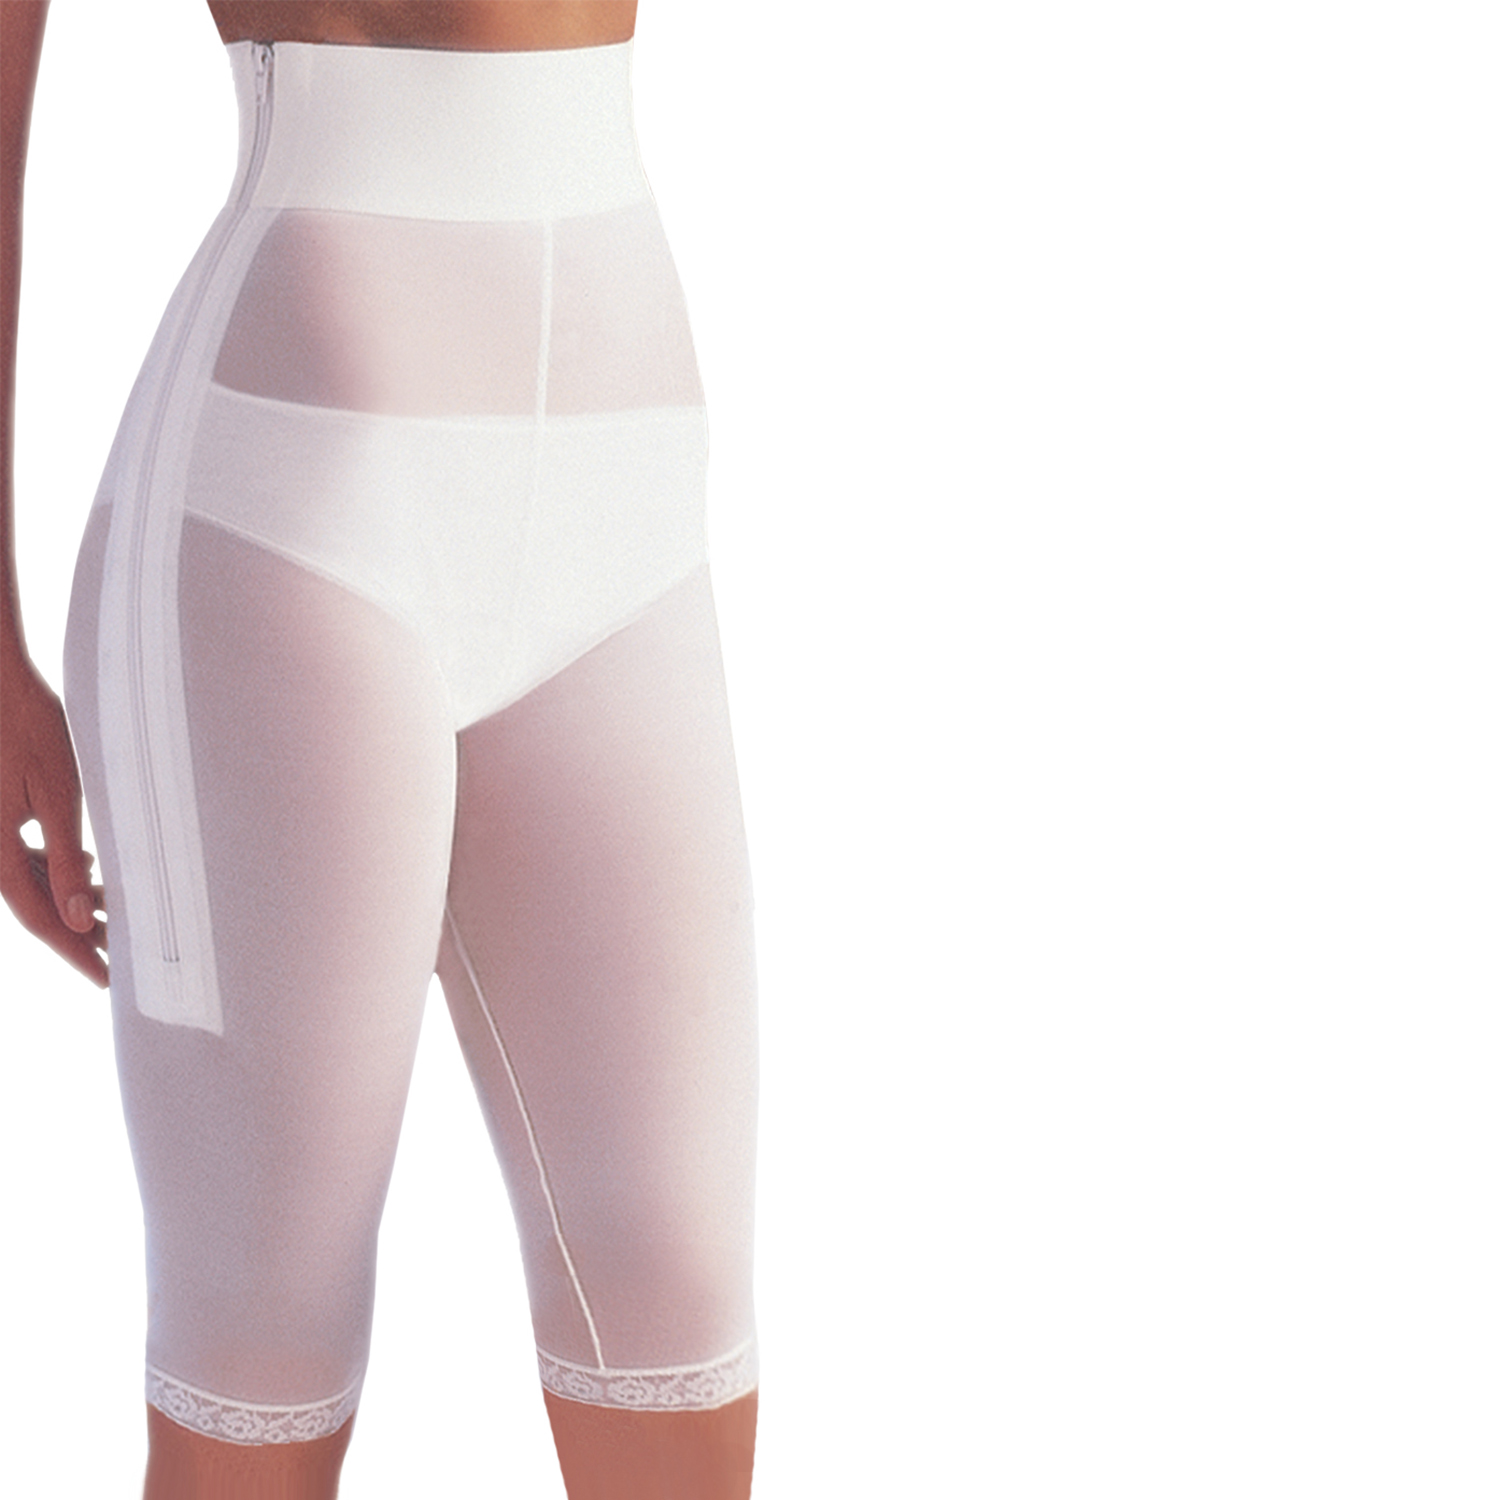 GABRIALLA Style PLG-810 Post-Liposuction and Surgical Support (Above Knee)